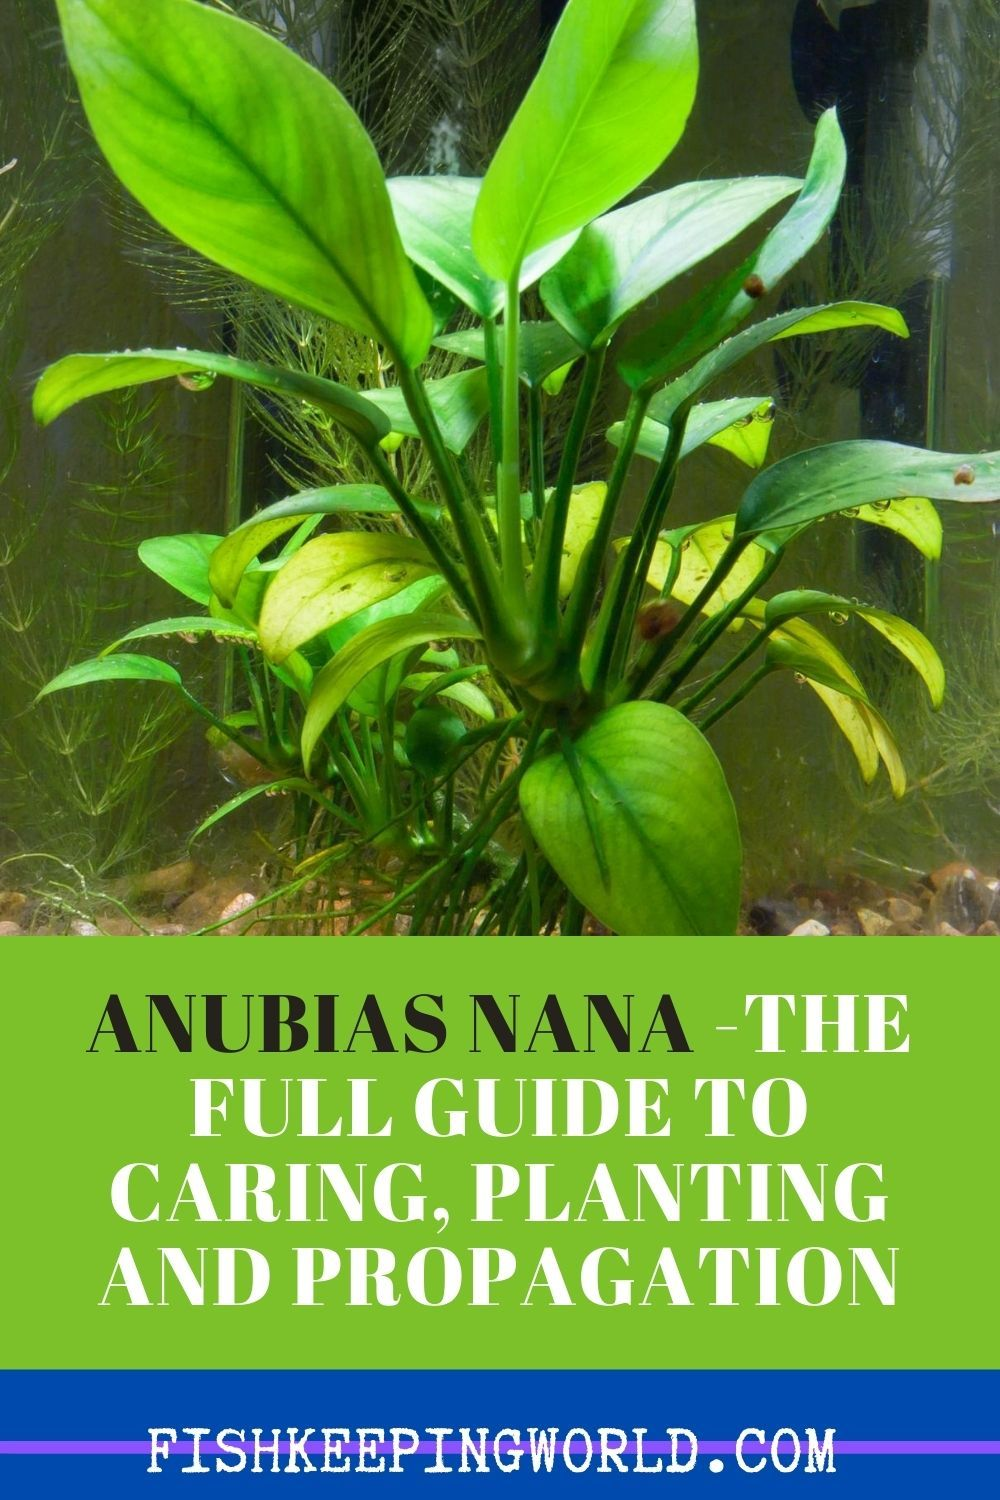 Anubias Nana The Full Guide To Caring Planting And Propagation In 2020 Plants Aquarium Design Fishing For Beginners